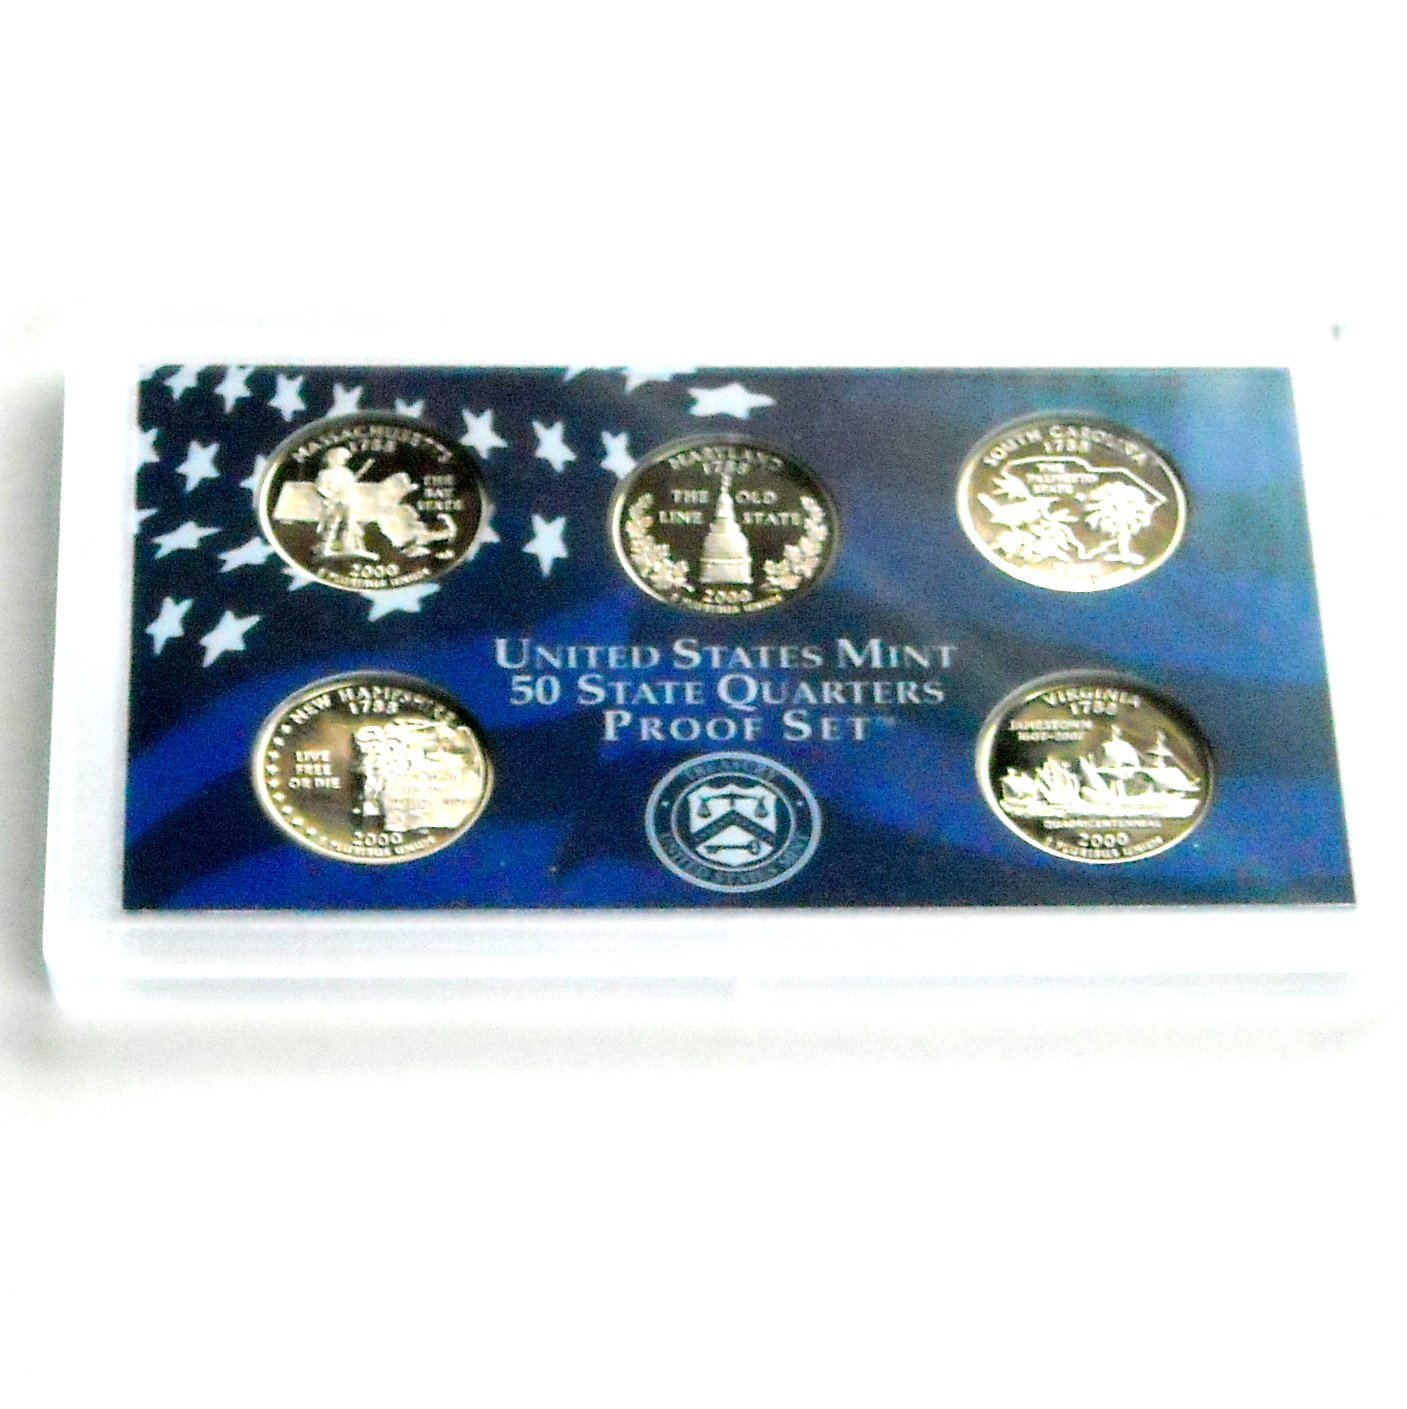 United States Mint 50 State Quarters Proof Set 2000